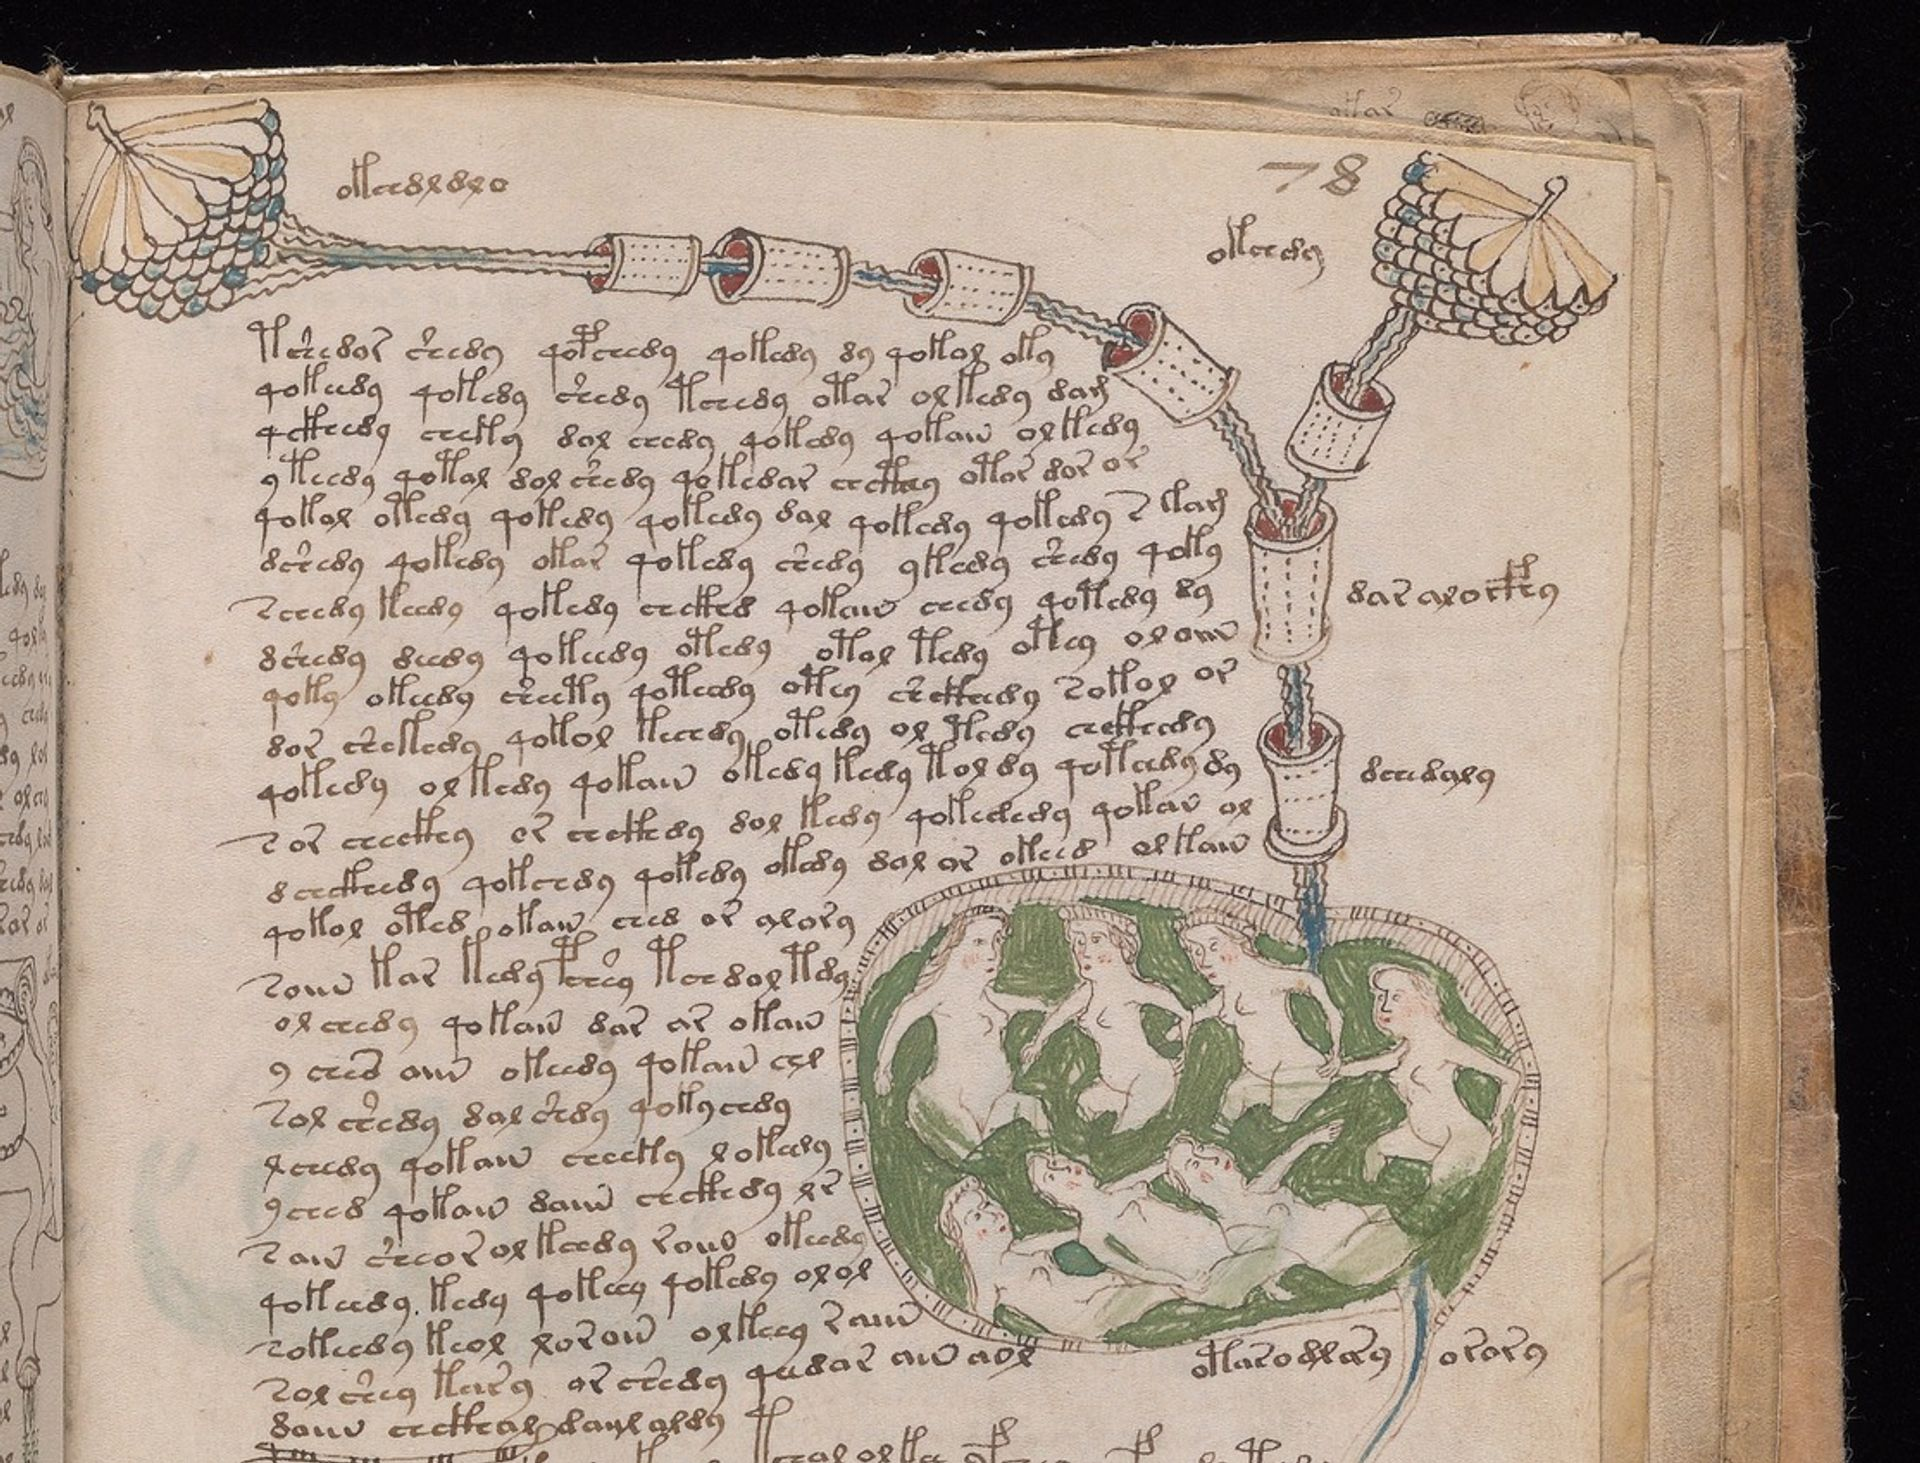 Detail from a page of the Voynich Manuscript Beinecke Rare Book and Manuscript Library at Yale University